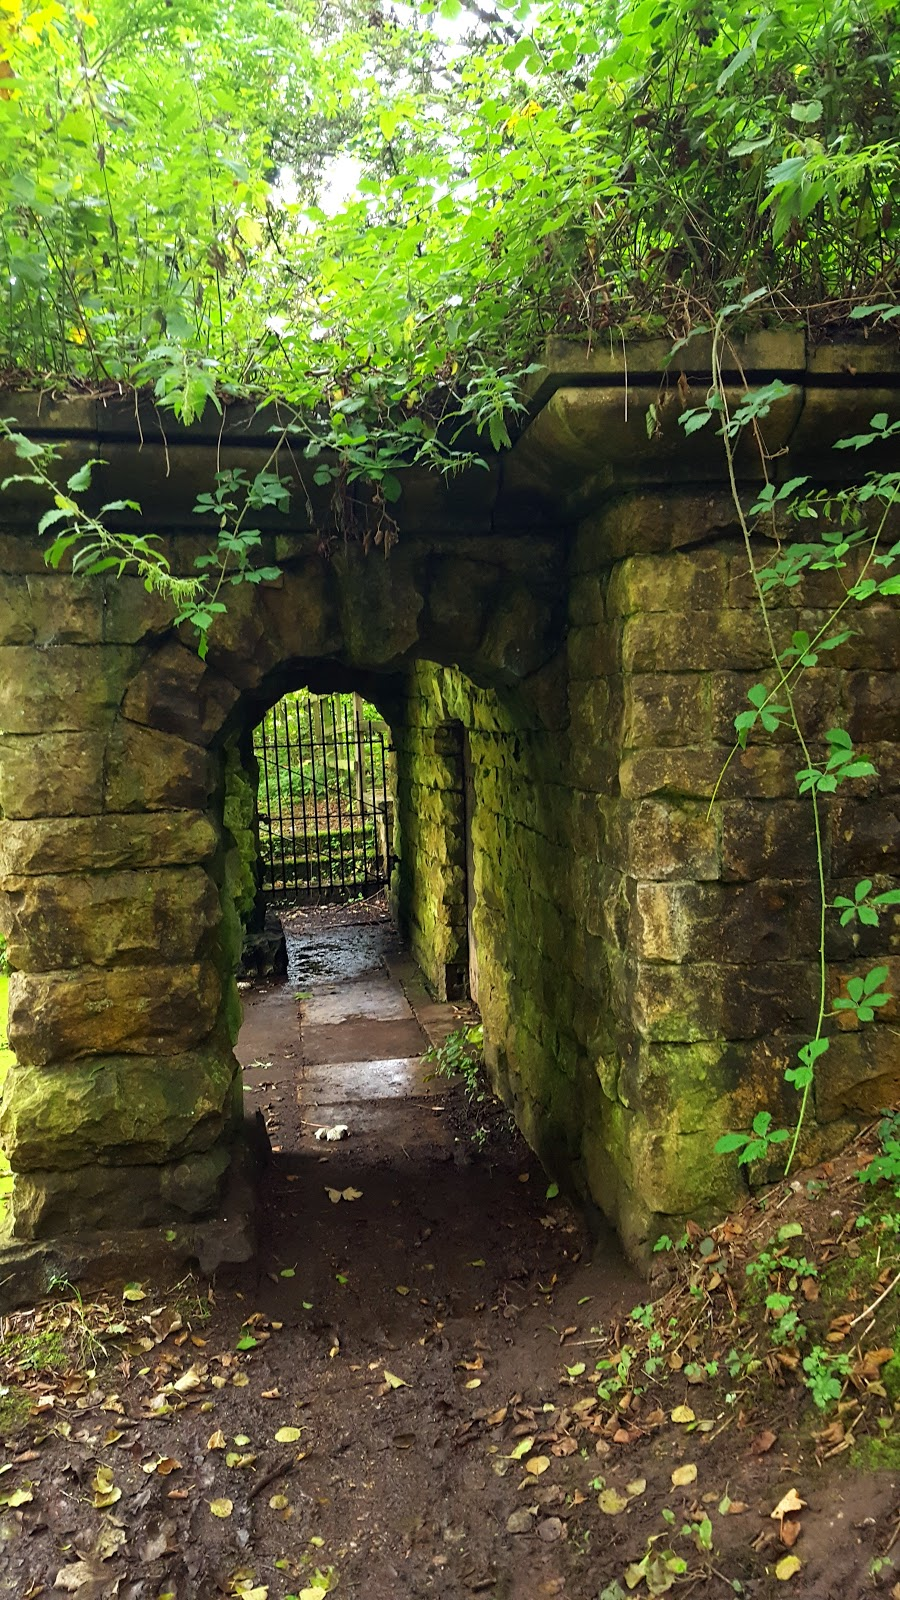 A Family Day Out In Clumber Park, Nottinghamshire